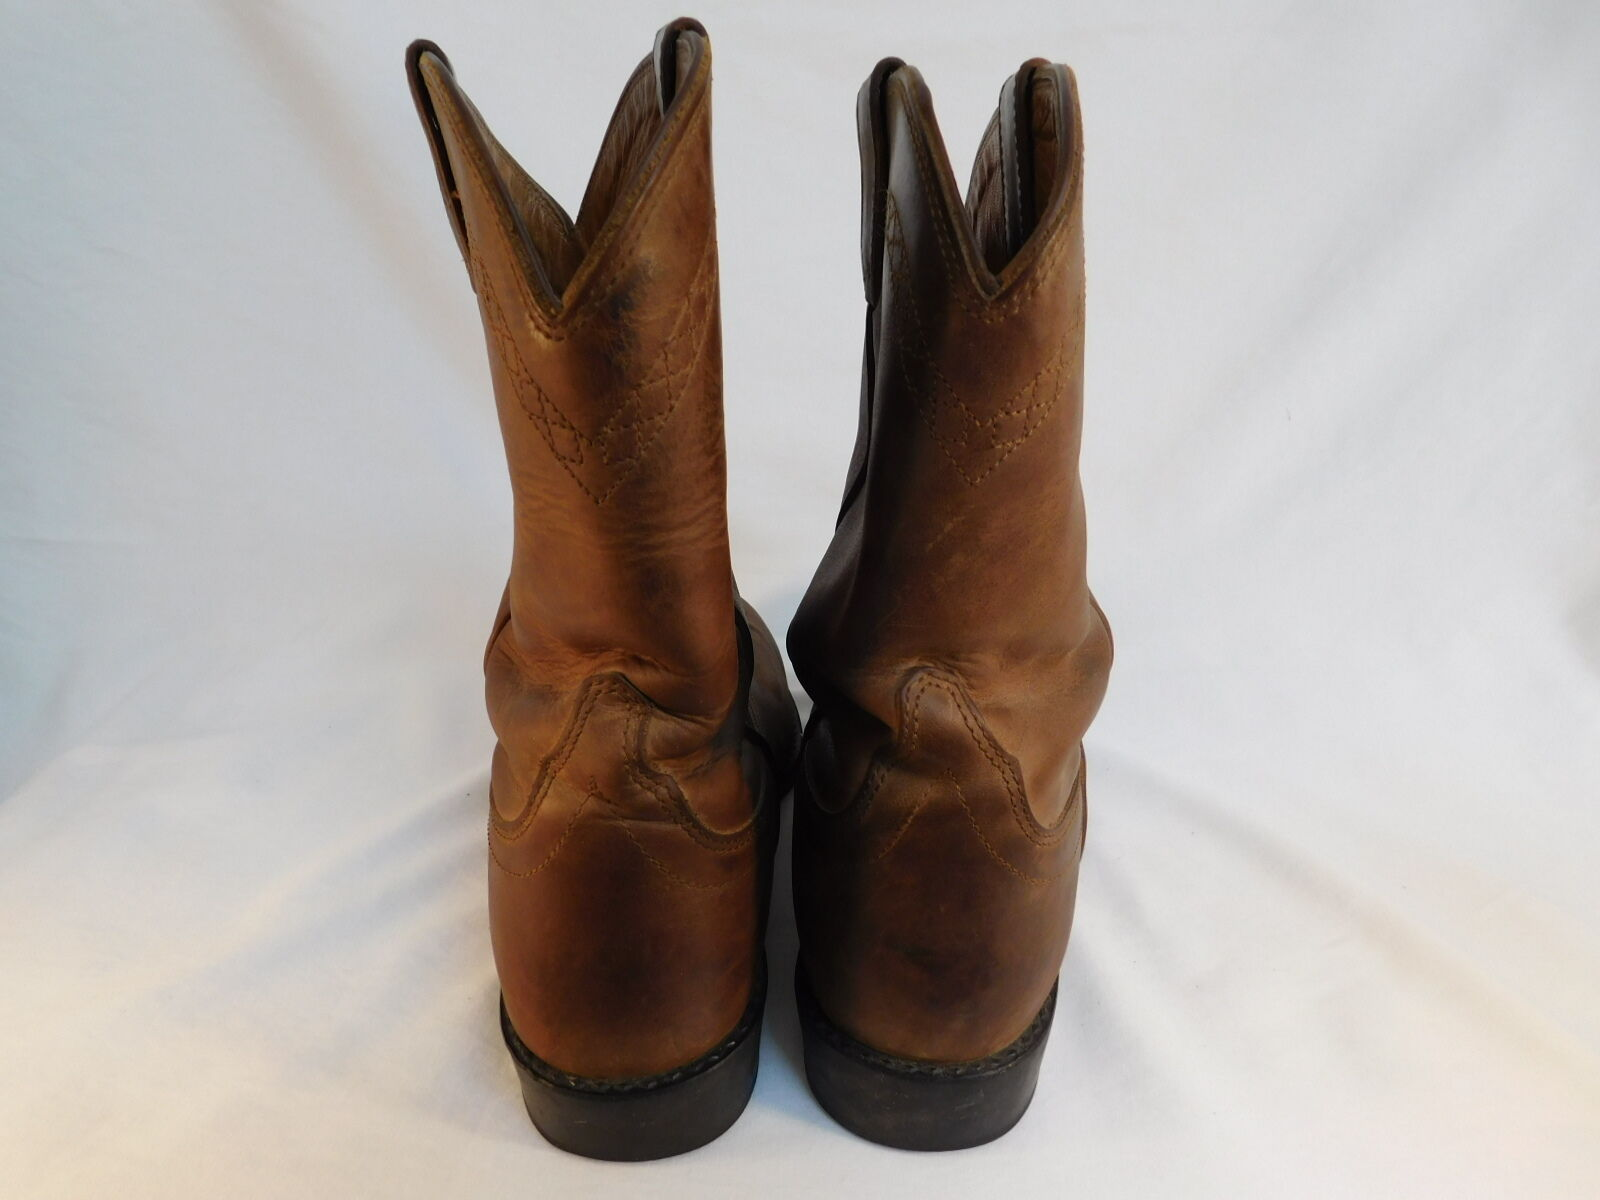 ARIAT COWBOY BOOTS ATS EQUIPPED BROWN LEATHER CONDITION! A2-CLASSIC EXCELLENT CONDITION! LEATHER 7b4618